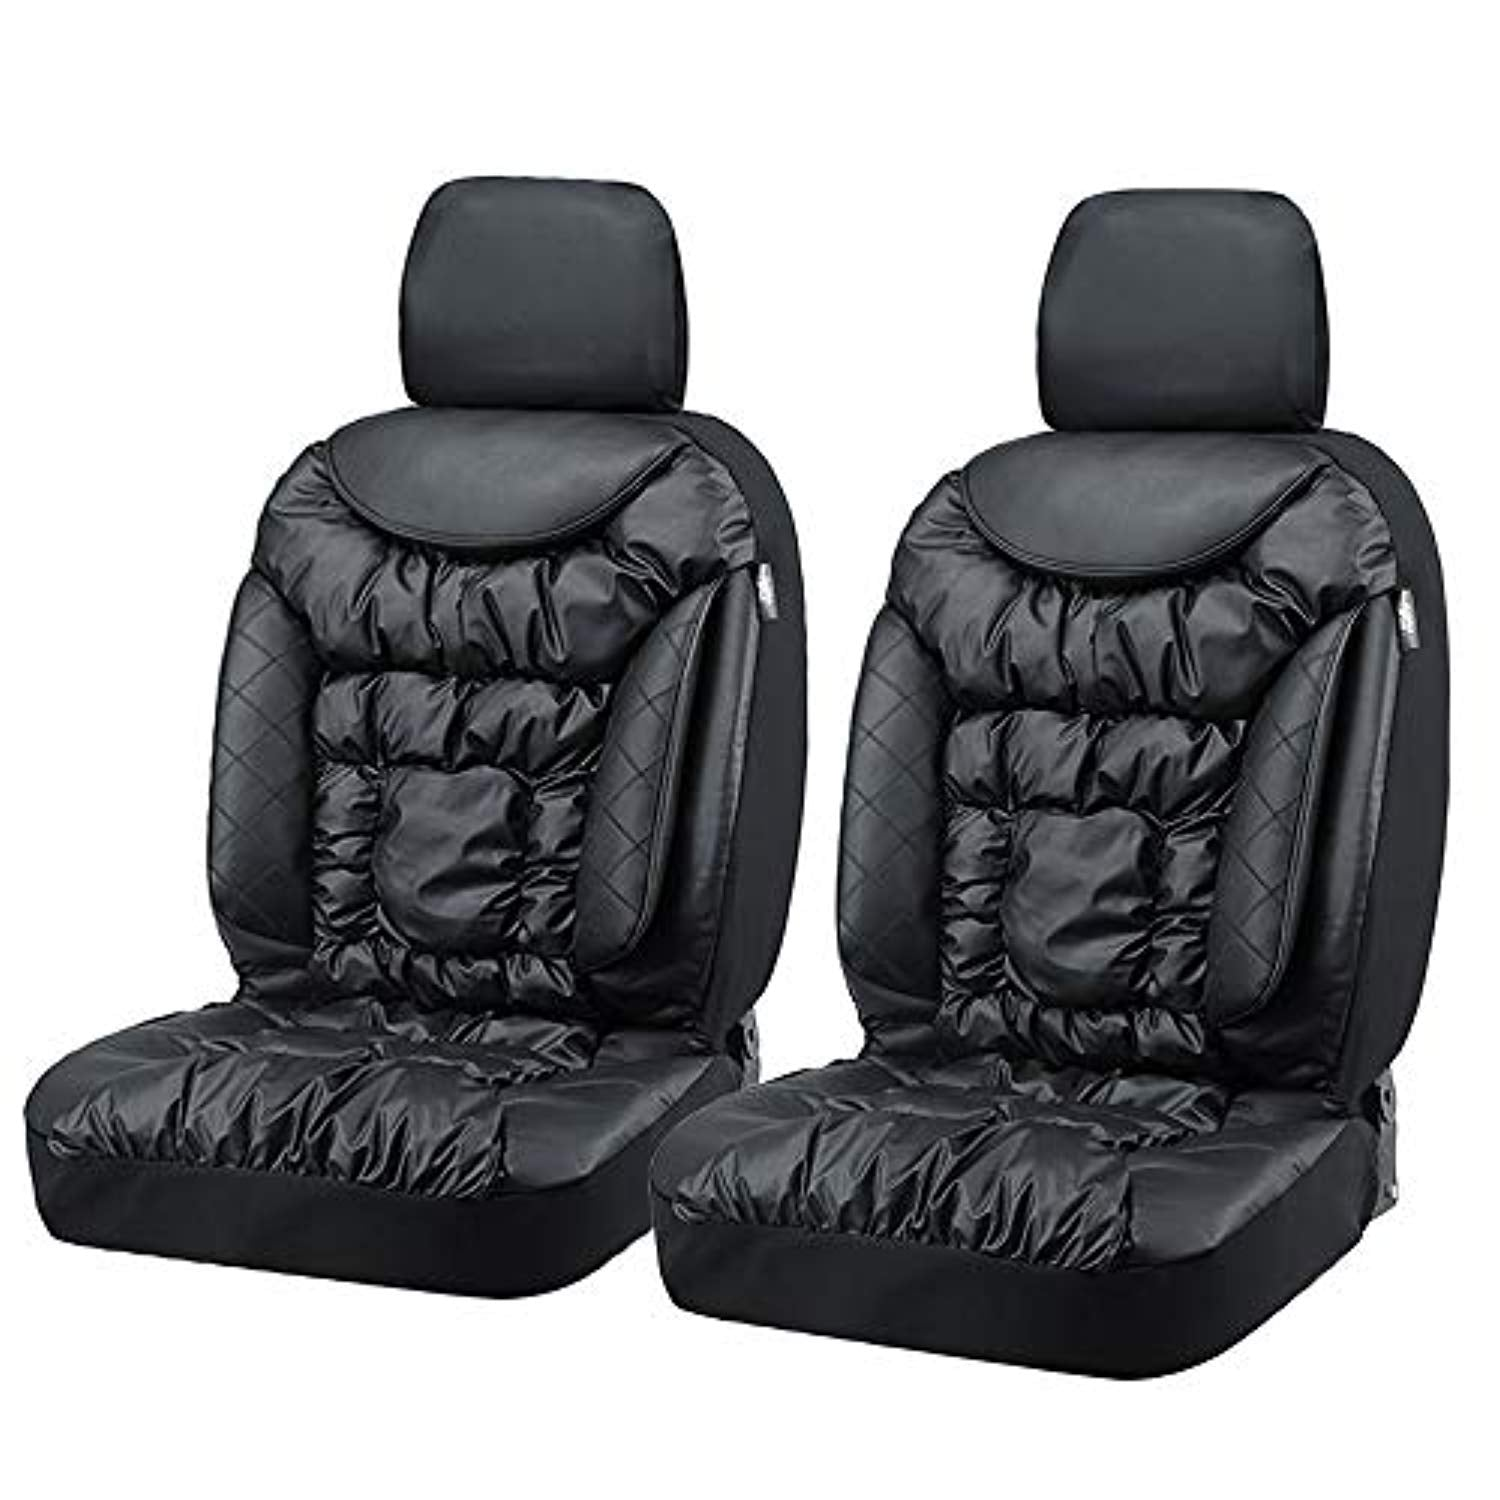 Brilliant Big Ant Seat Covers Unique Comfortable Leatherette Car Seat Gamerscity Chair Design For Home Gamerscityorg